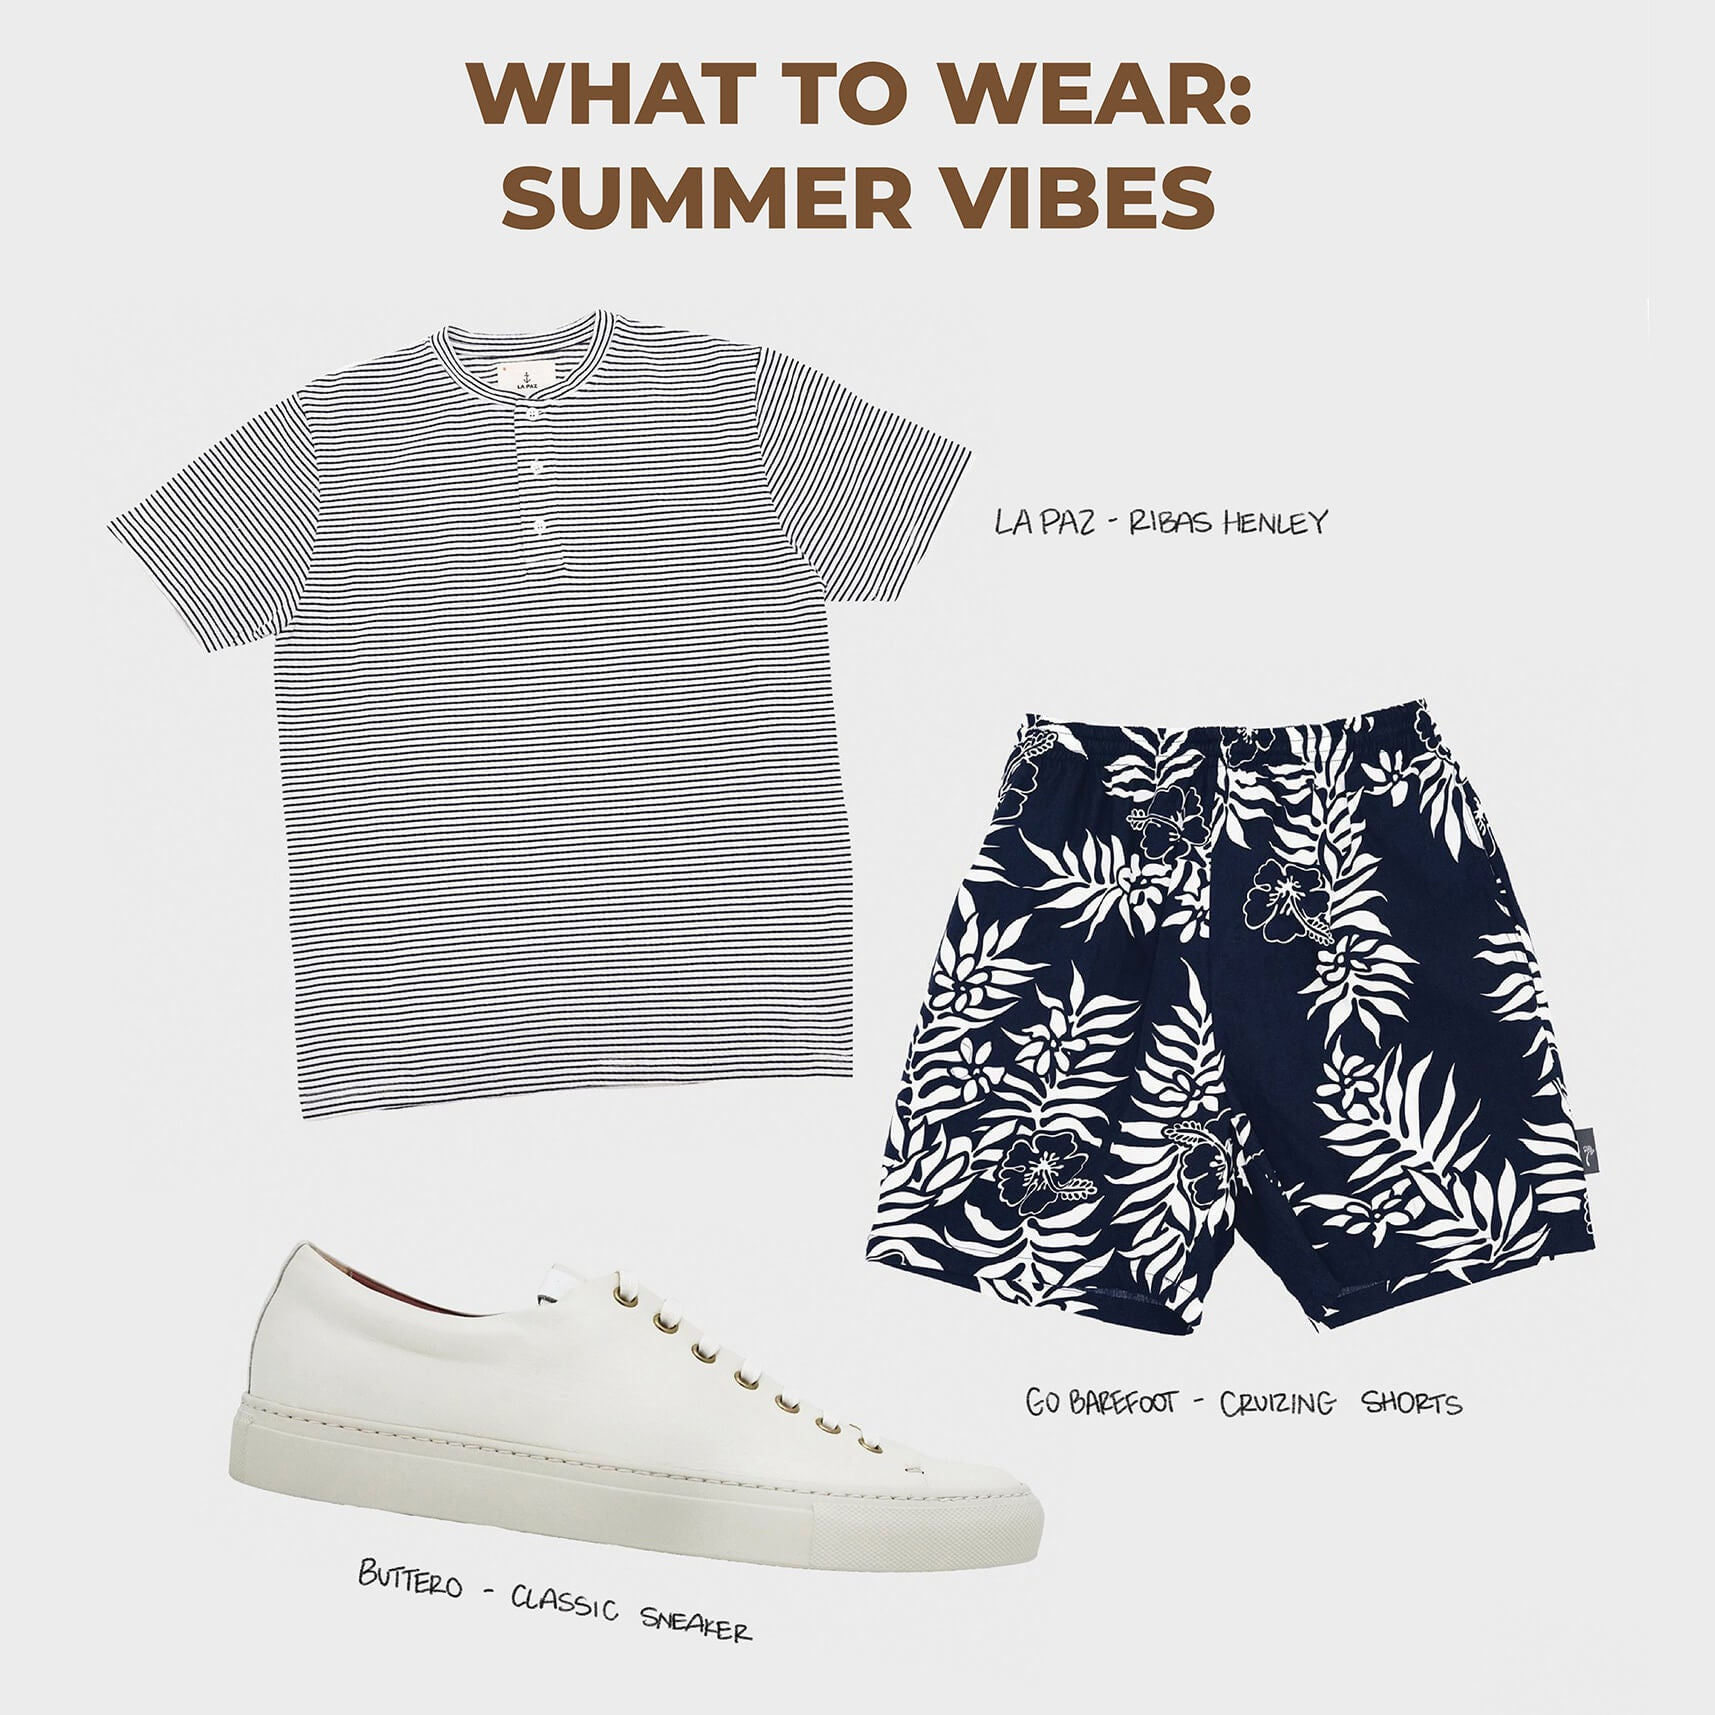 What to Wear: Summer Vibes